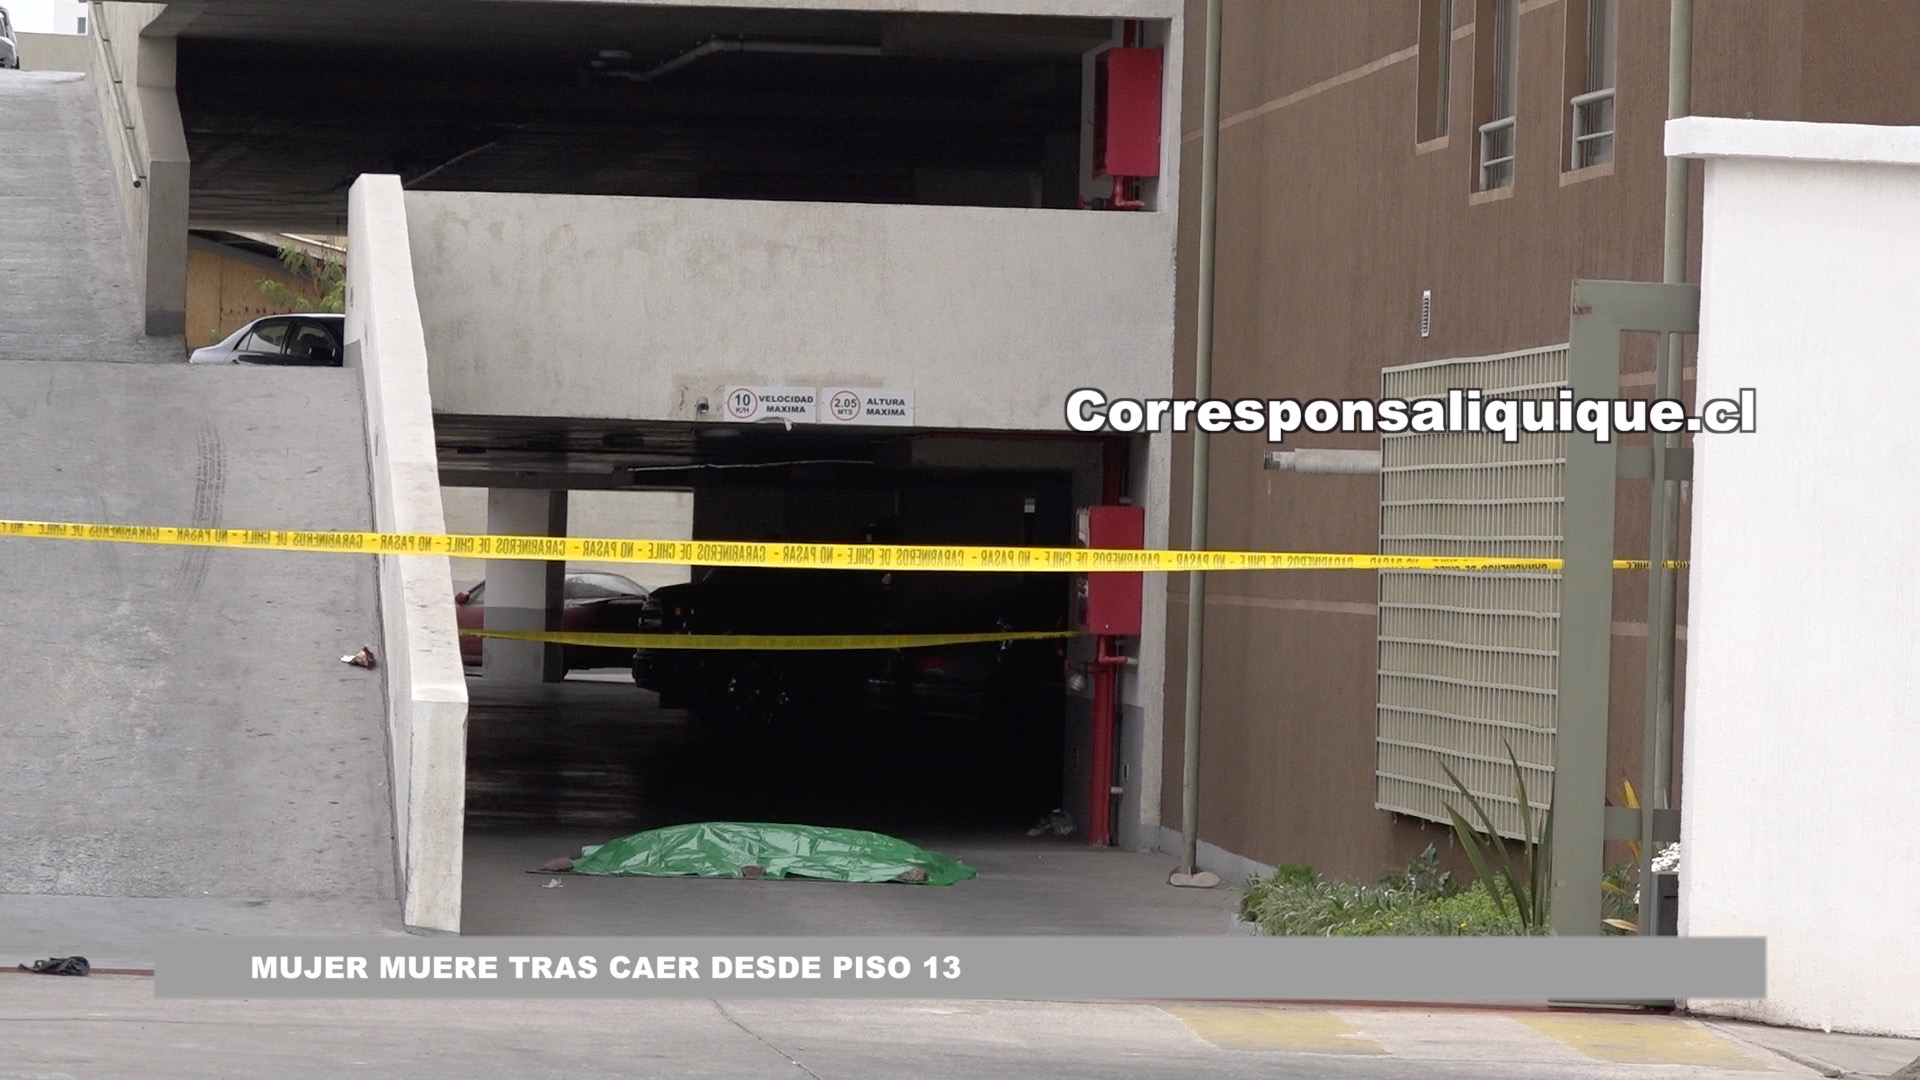 Photo of Mujer muere tras caer desde piso 13